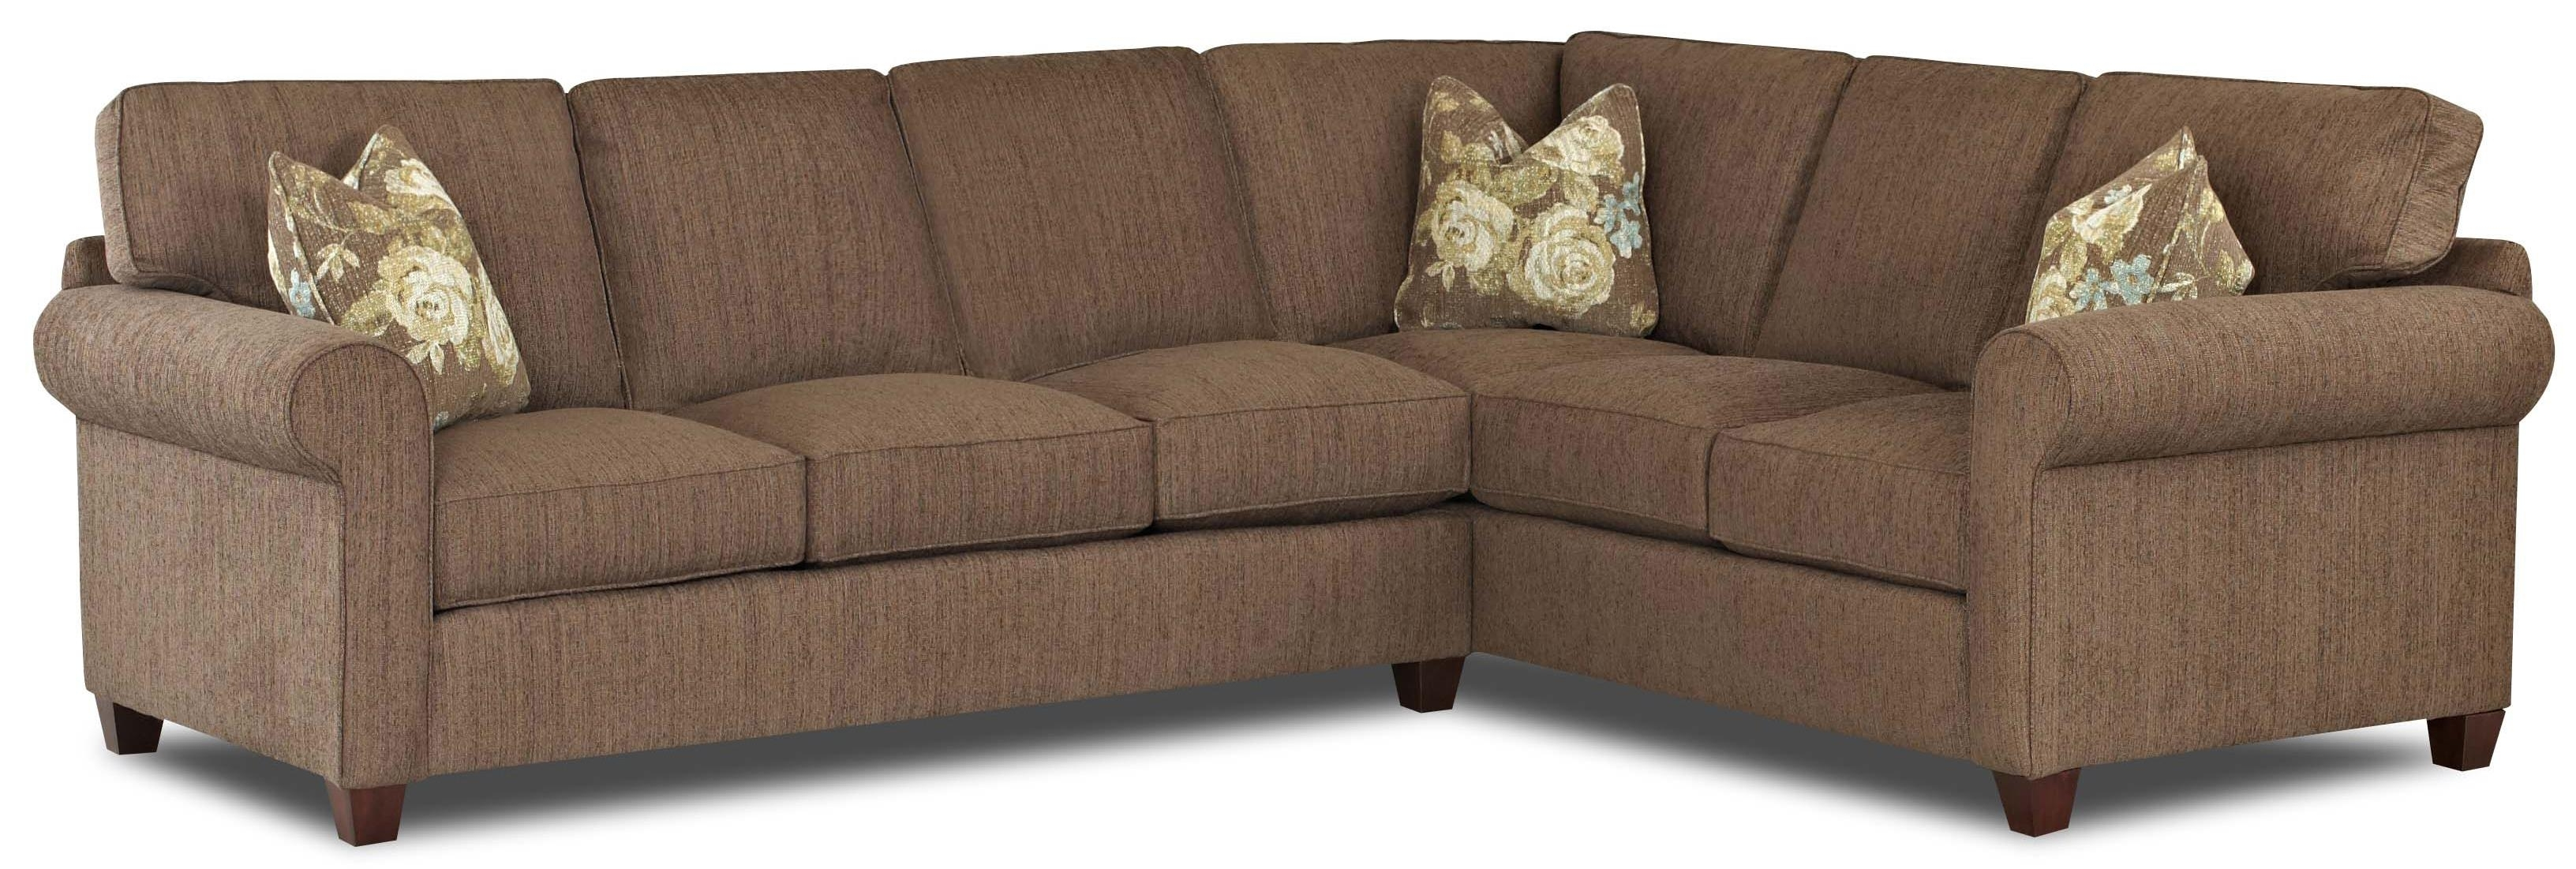 Transitional 2 Piece Sectional Sofa With Weltklaussner (View 10 of 20)